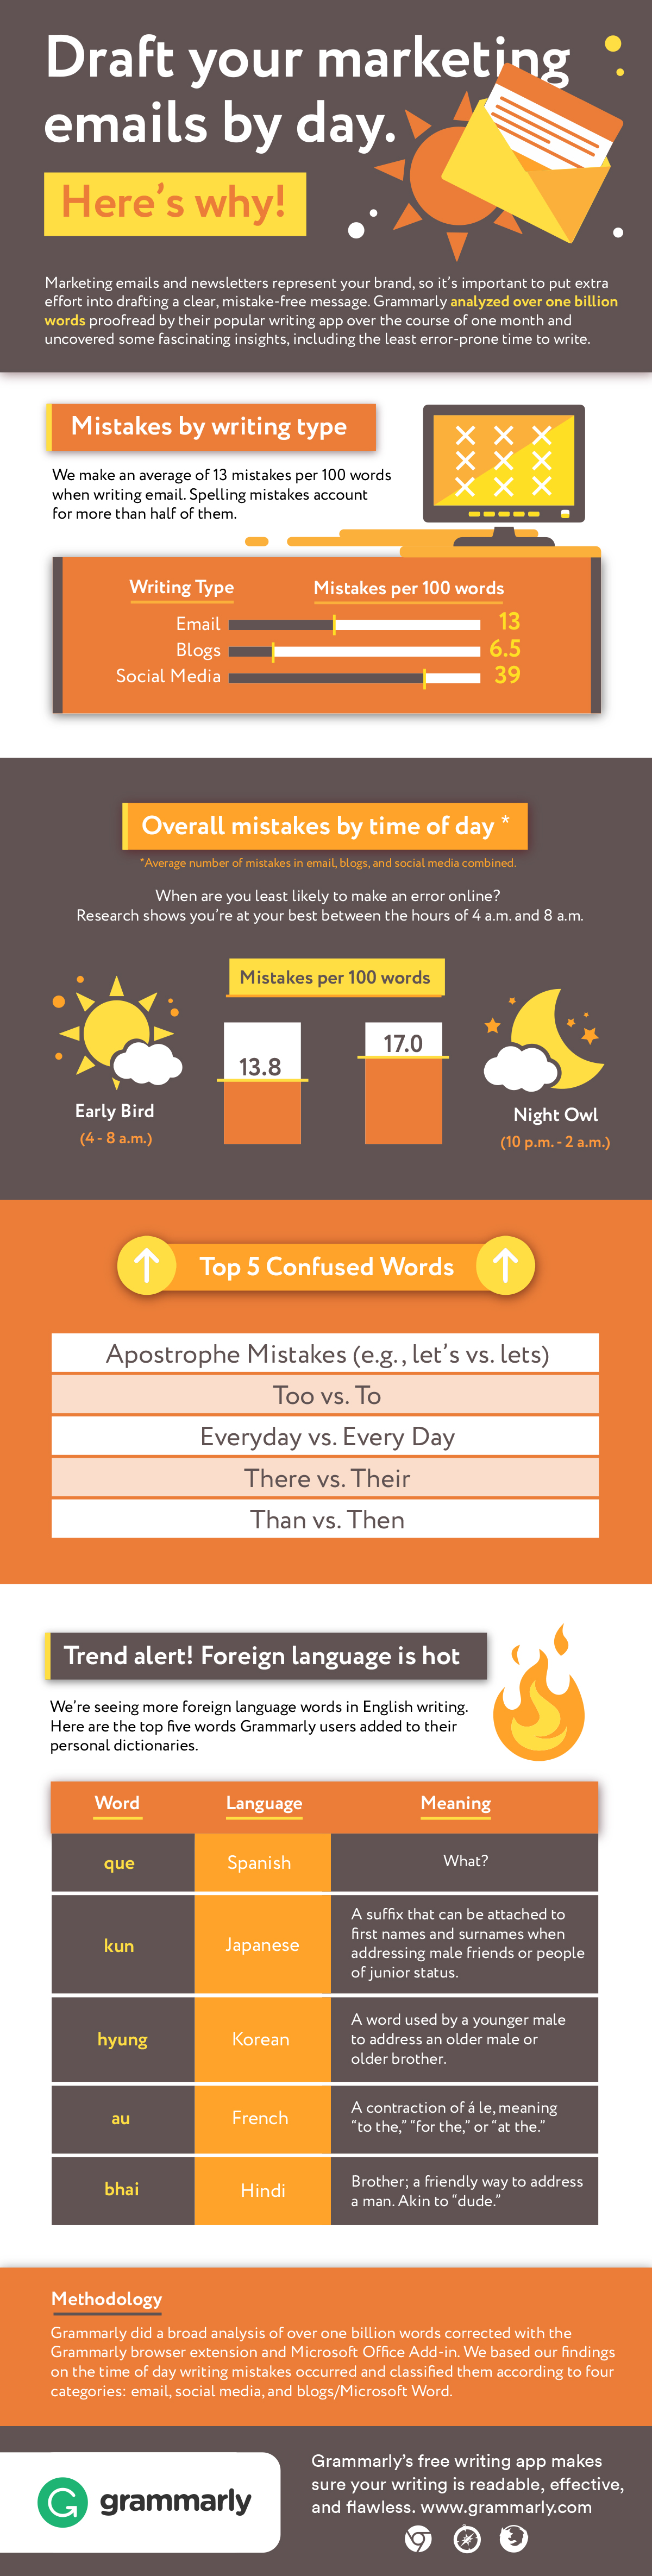 The Most Common Email Grammar Mistakes and How to Avoid Them